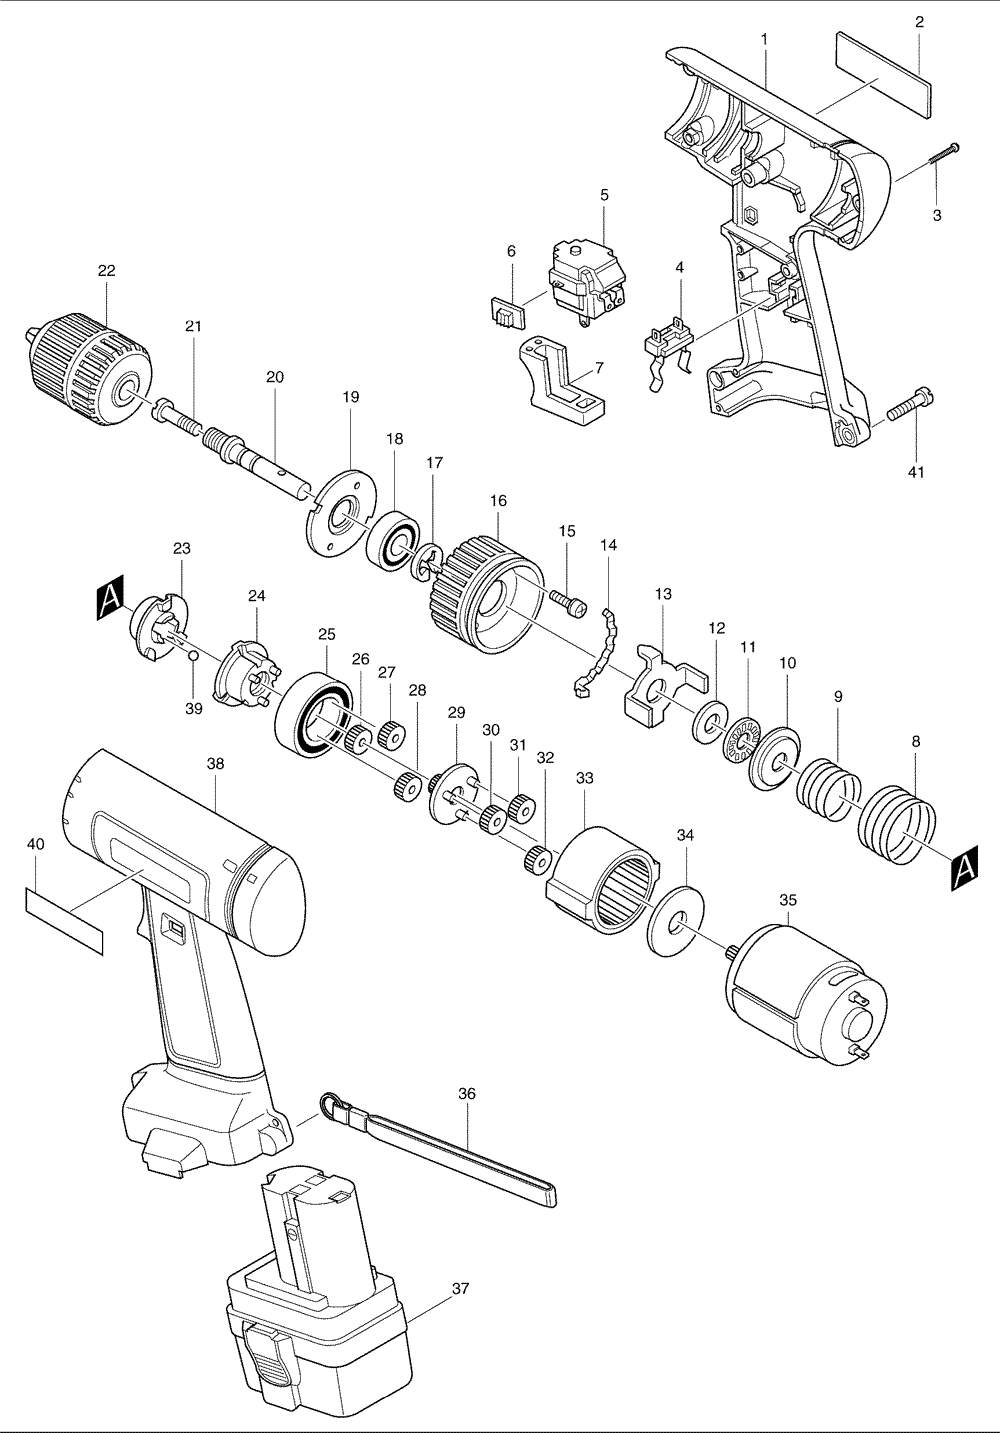 Makita 6222d Parts List